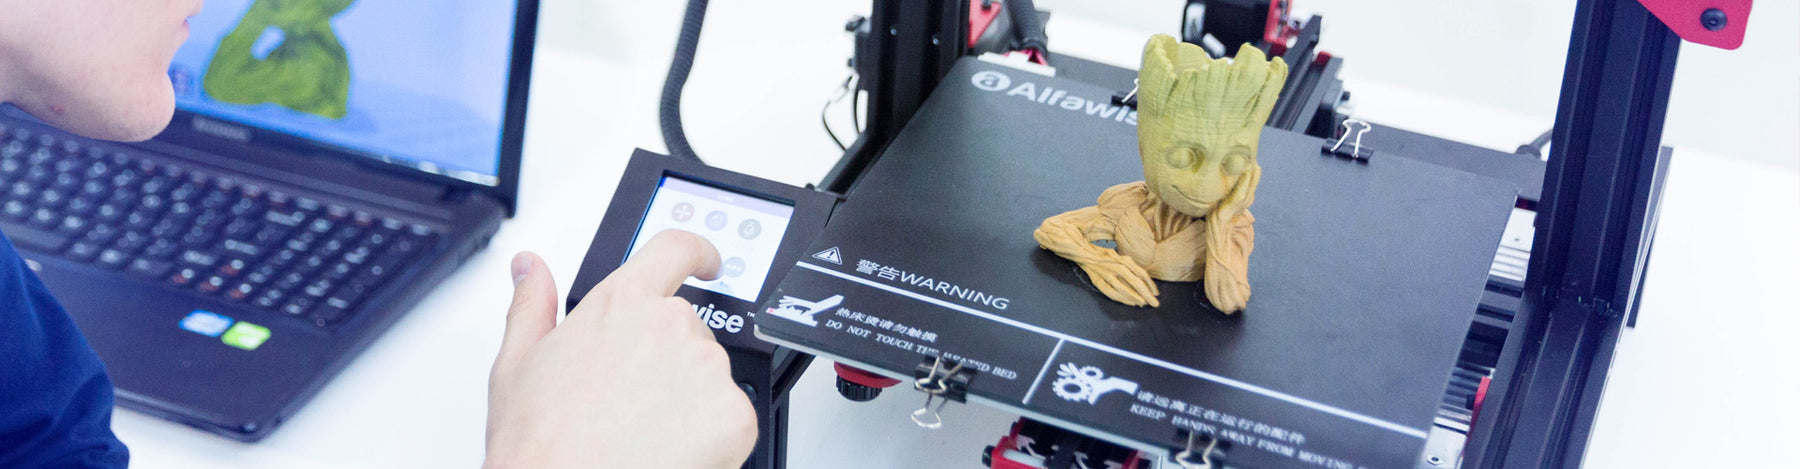 Alfawise U30 Review: The Best 3D Printer For Every Budget